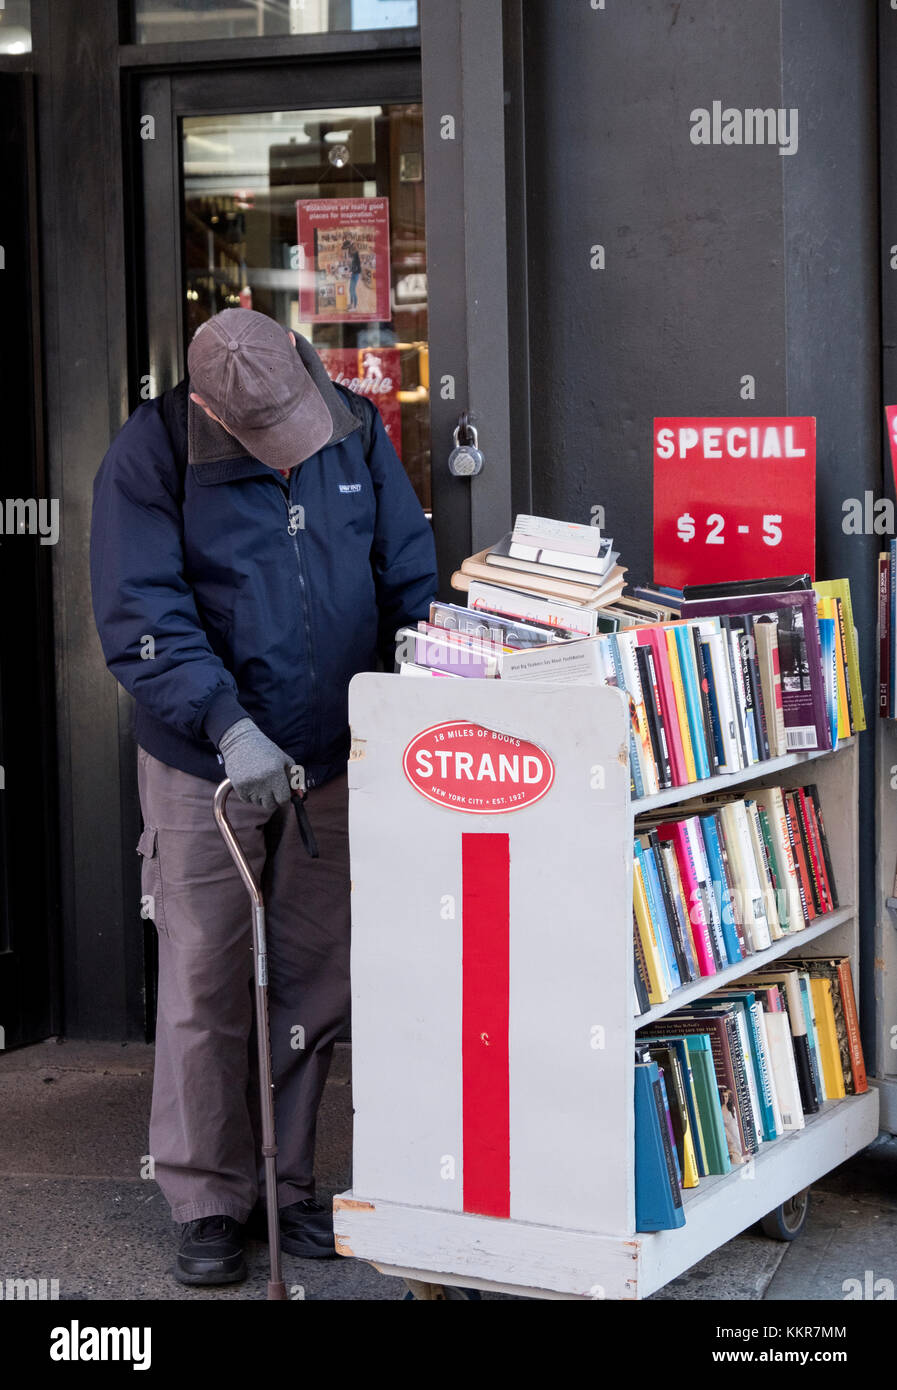 An unidentified senior citizen with a cane browsing the sale book racks outside the Strand bookstore on Broadway - Stock Image